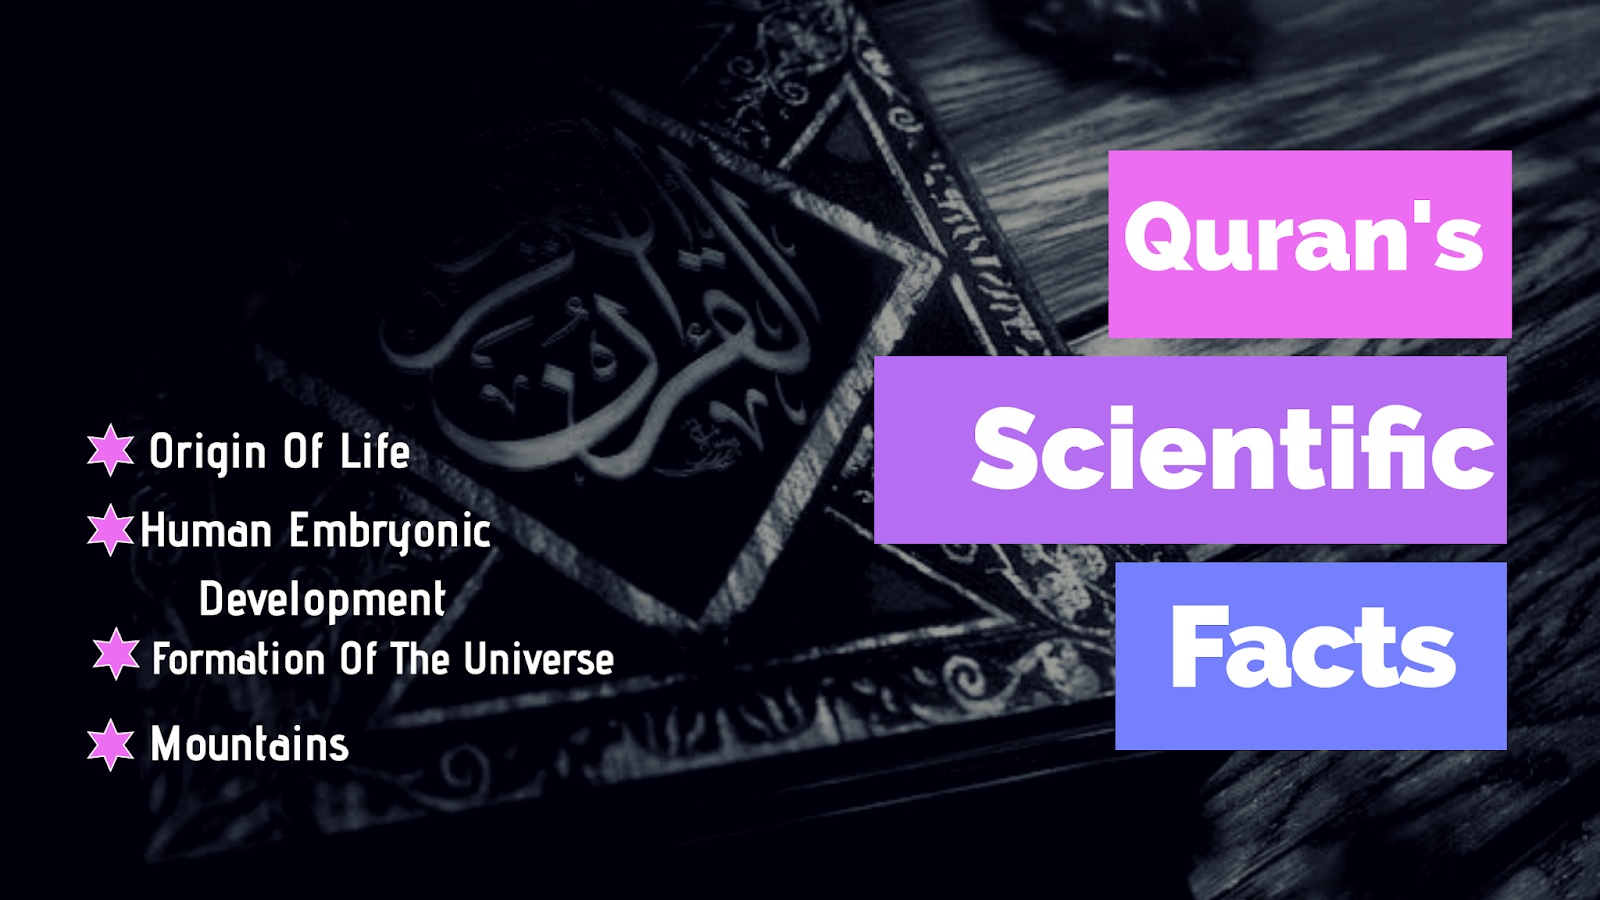 Scientific Facts In The Holy Quran - EduIslam Mission